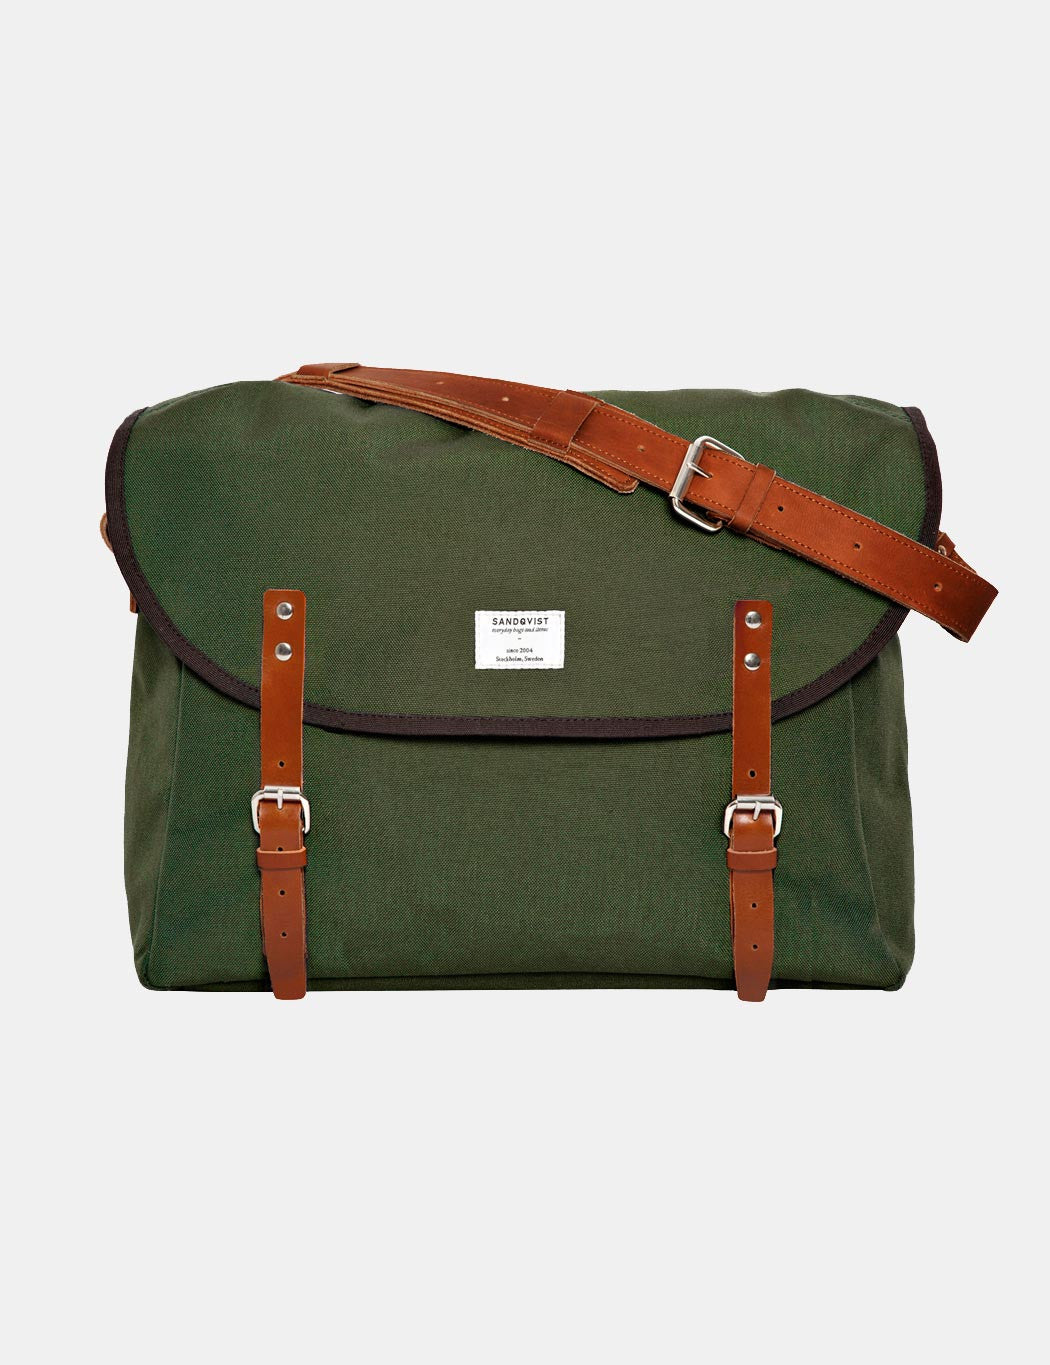 Sandqvist Erik Messenger Bag - Green